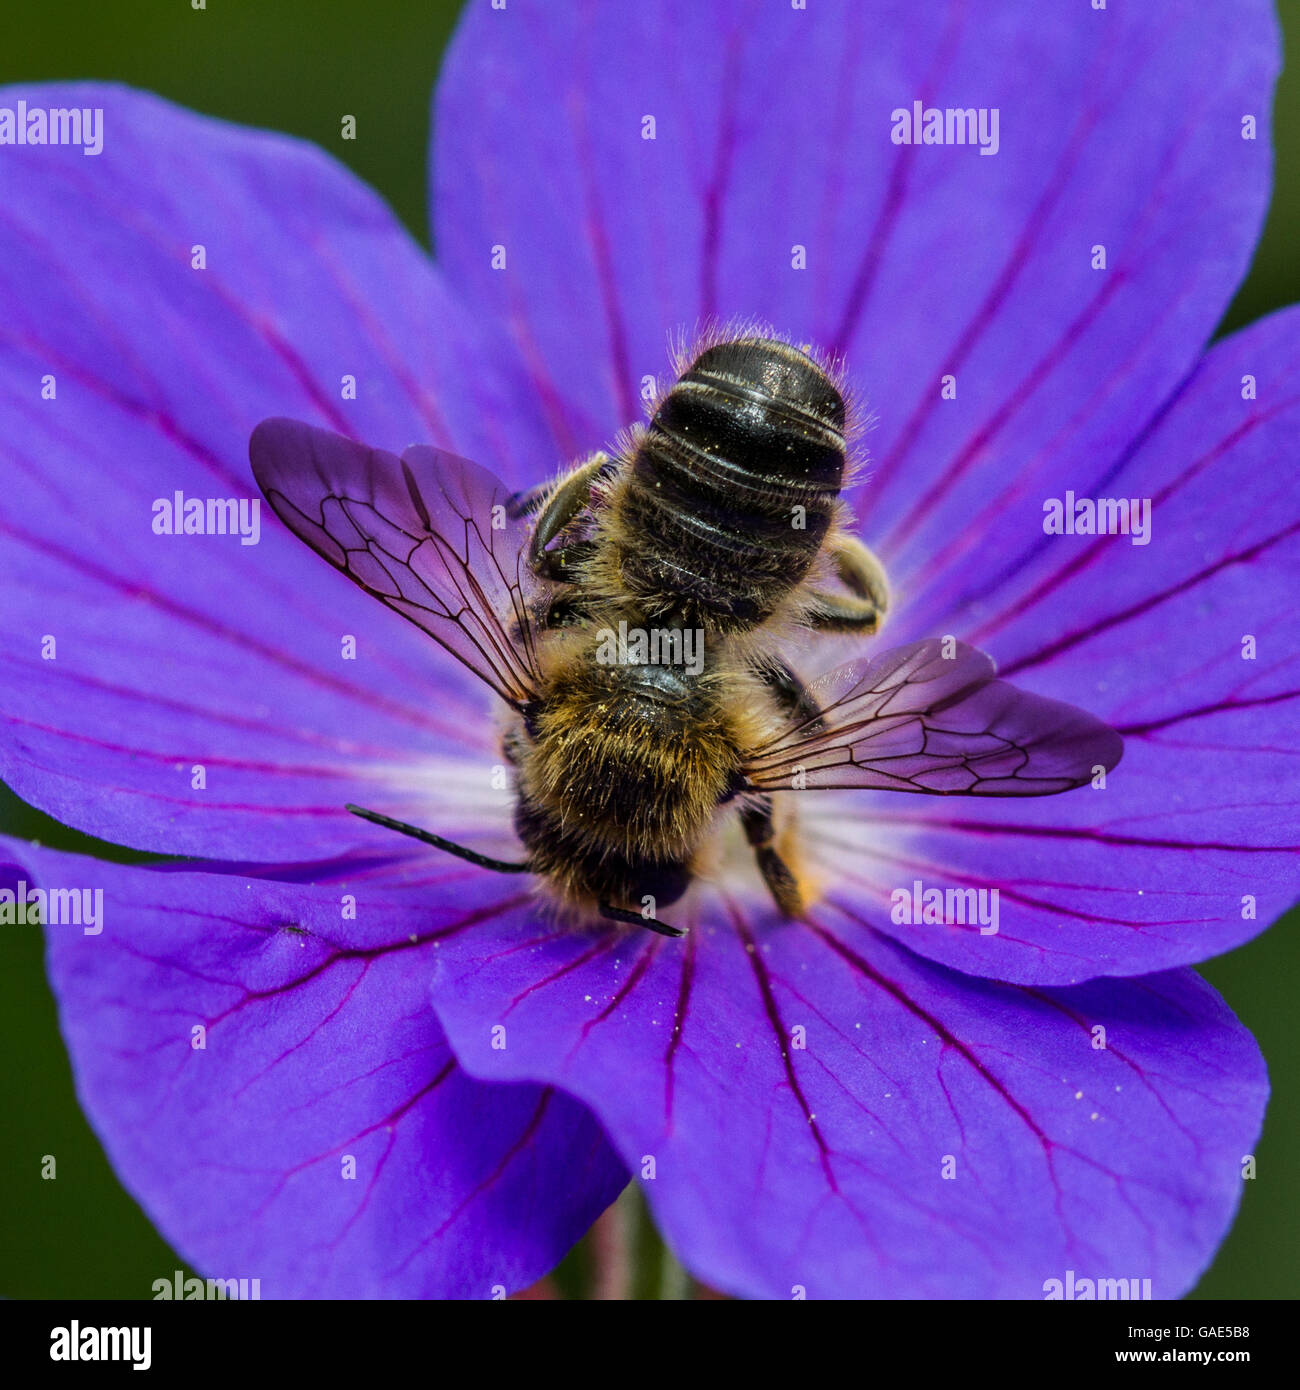 Leaf-cutter bee (Megachile species) feeding on a geranium flower Stock Photo